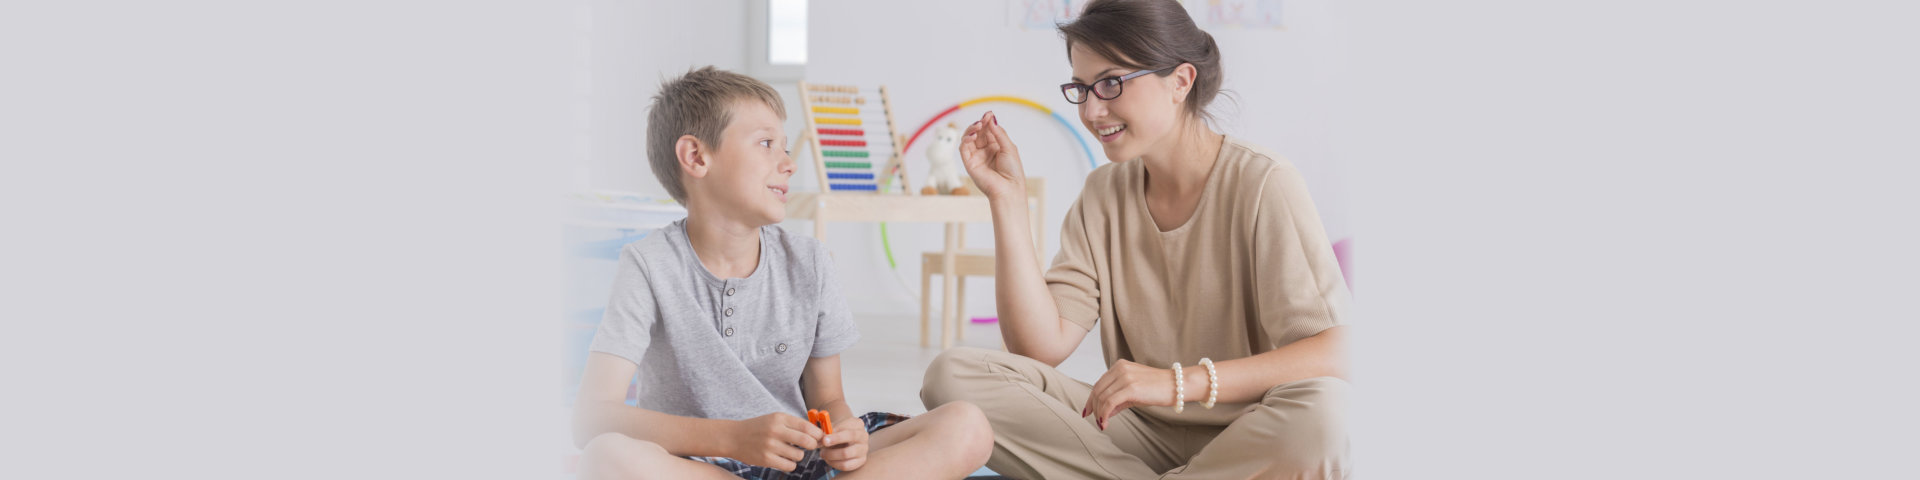 Young child and friendly teacher during play therapy session in bright office room, boy during speech and language therapy